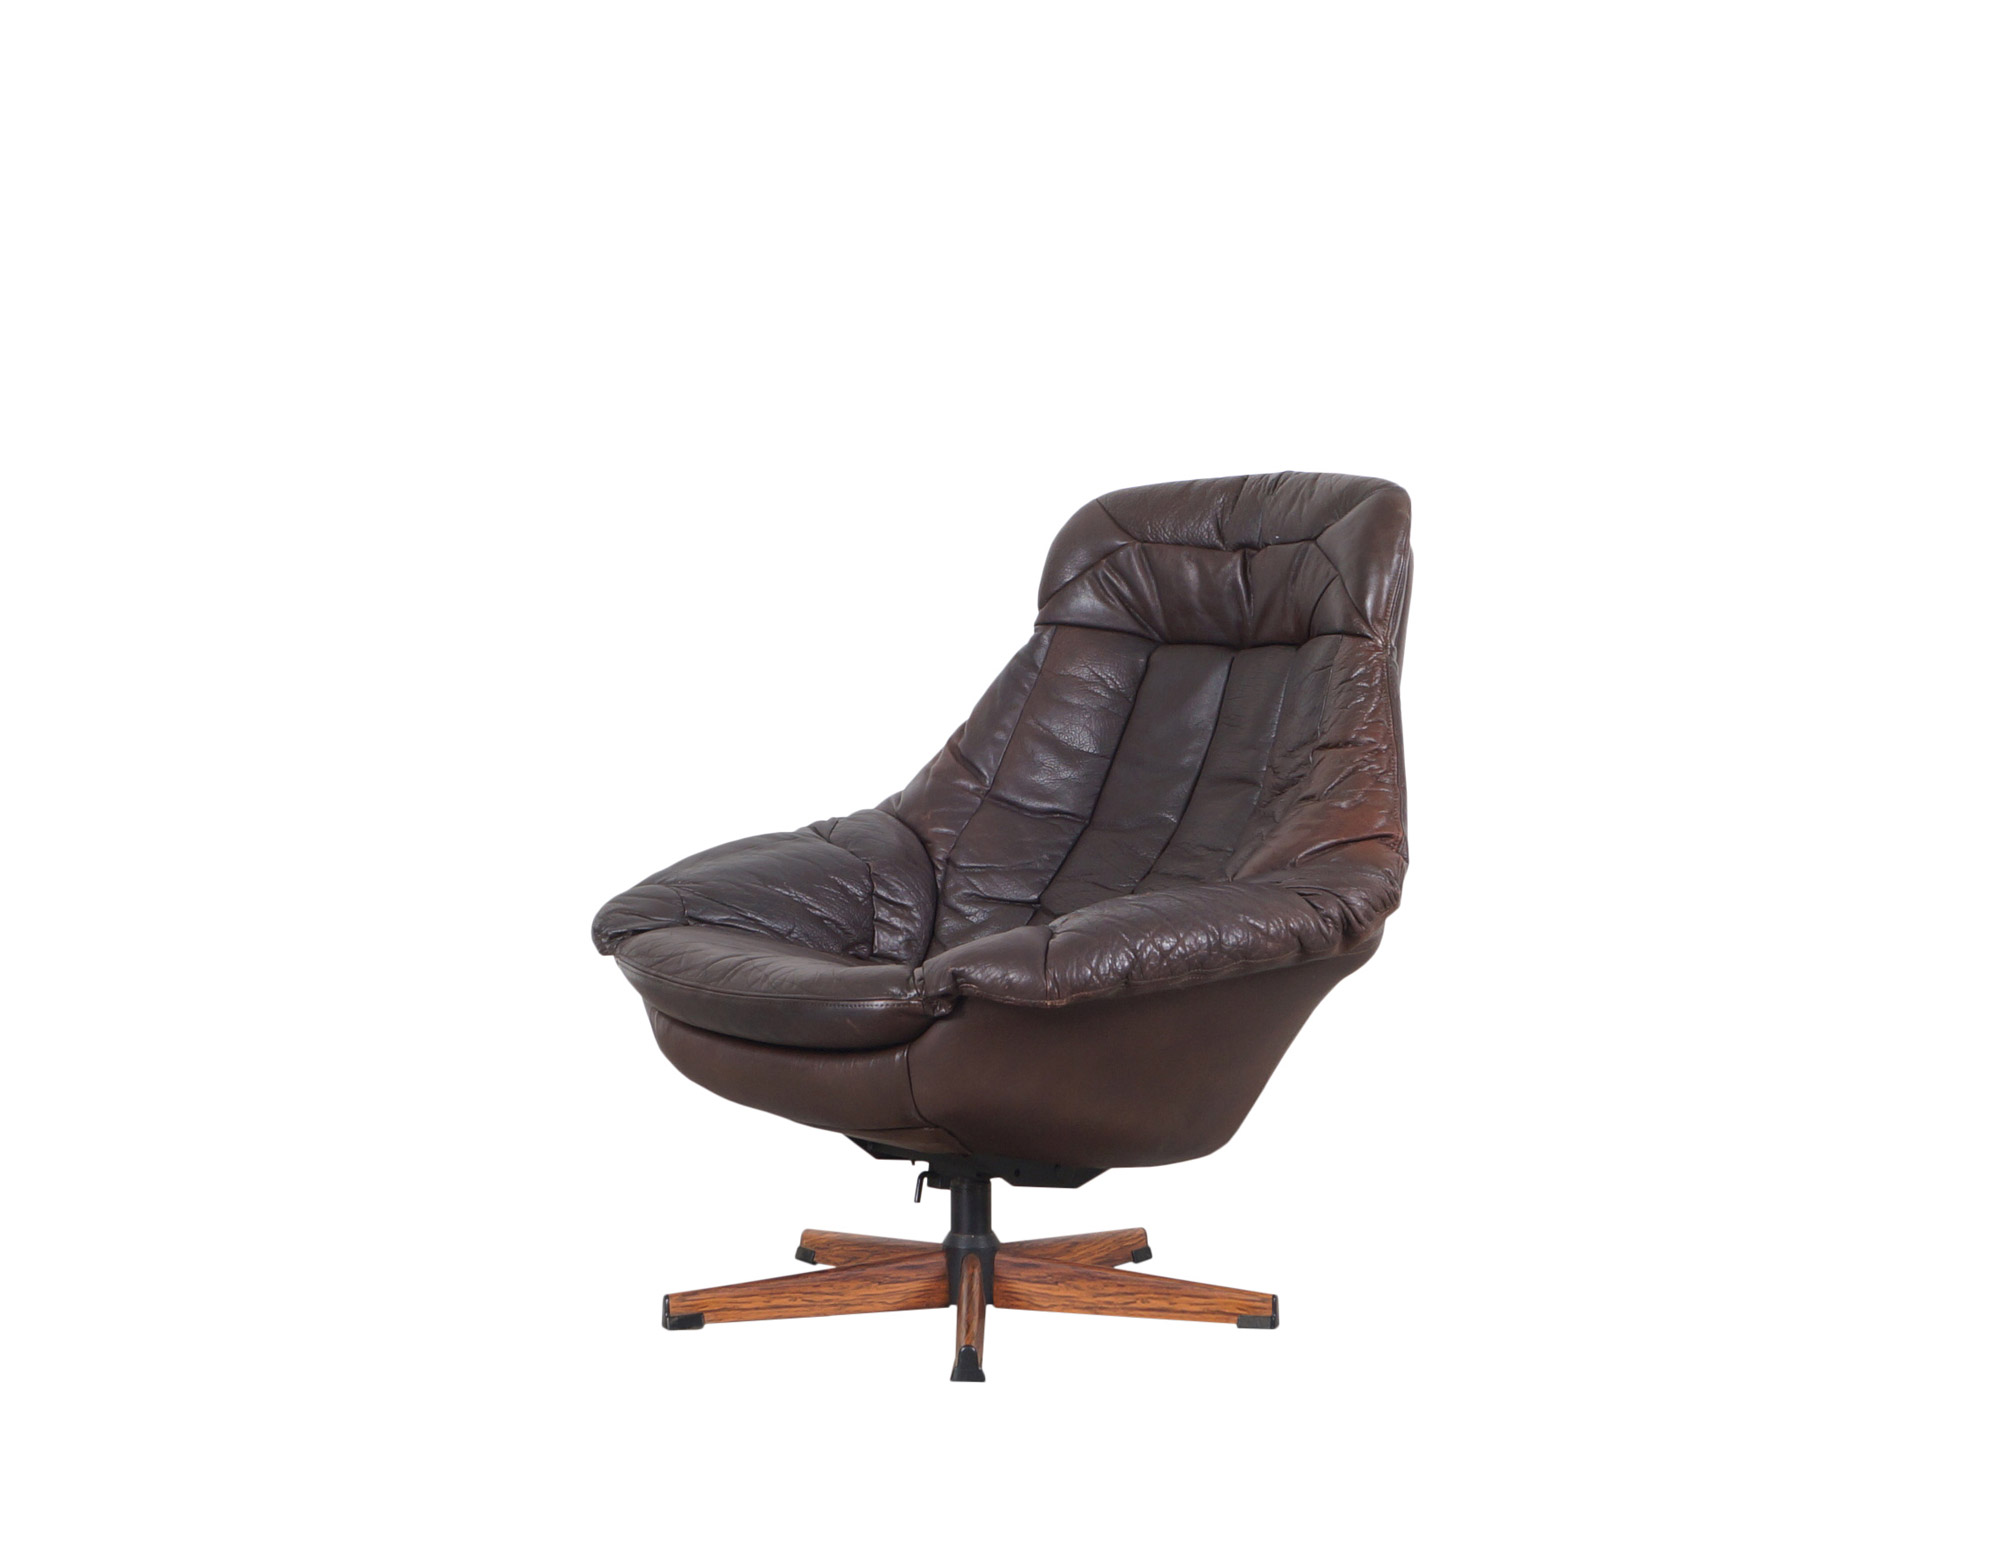 Vintage Leather Reclining Swivel Lounge Chair by H.W. Klein for Bramin